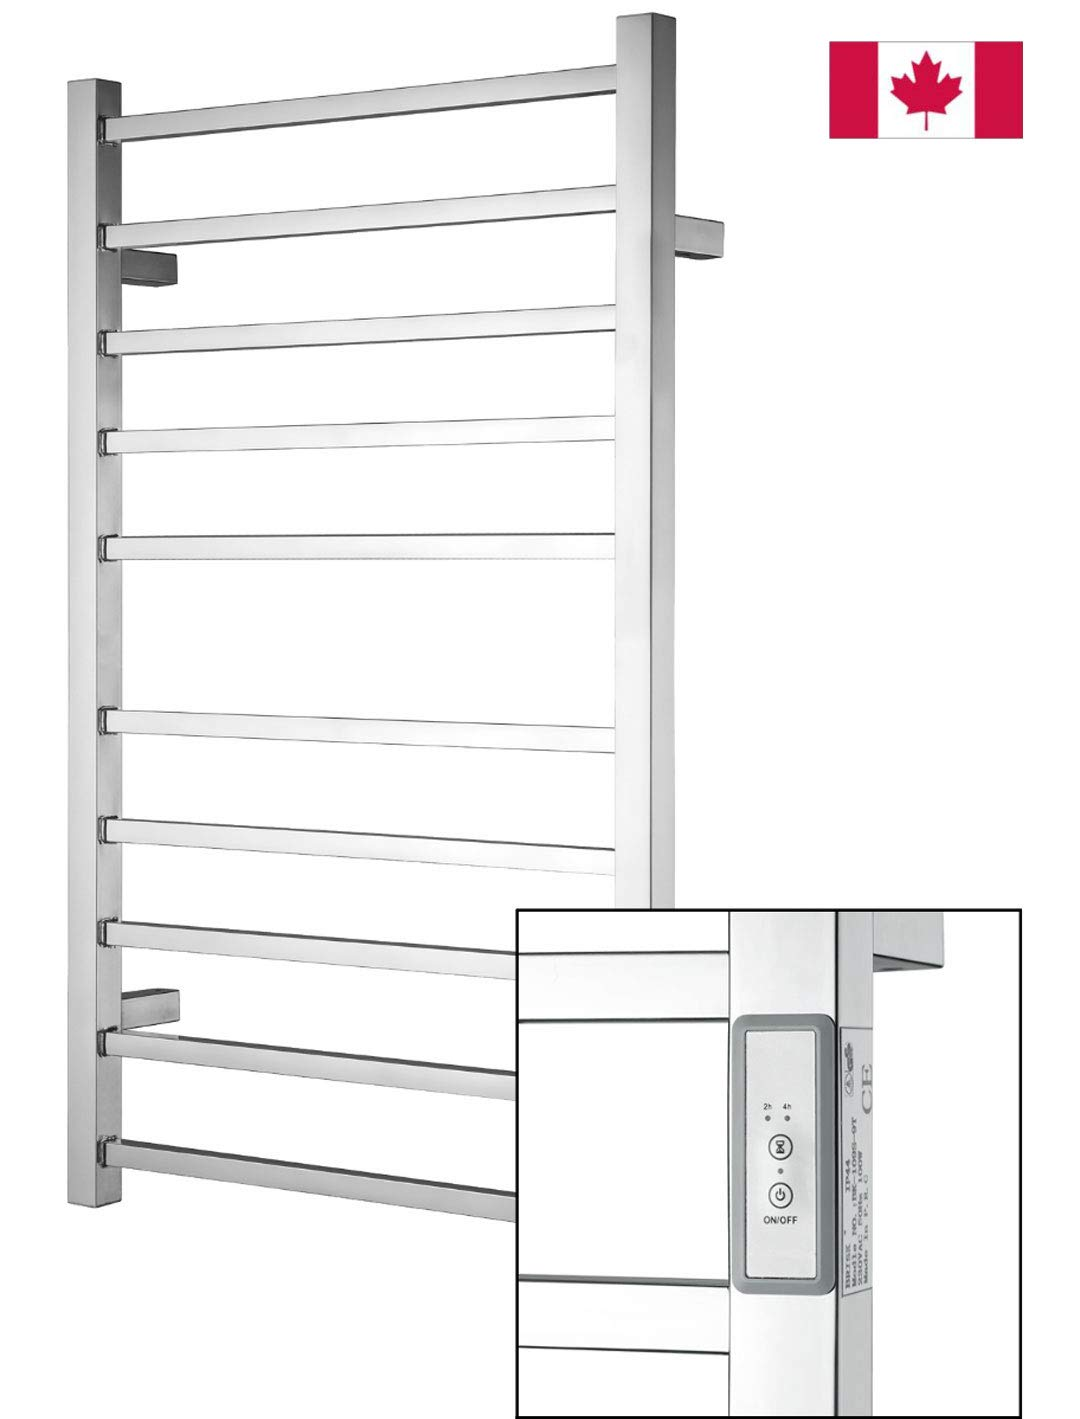 Towel Warmer | Built-in Timer with Led Indicators | 3 Timer Modes: ON/Off, 2 H, 4 H | Wall Mounted | 10 Bars | High Polish Chrome Stainless Steel by Odass